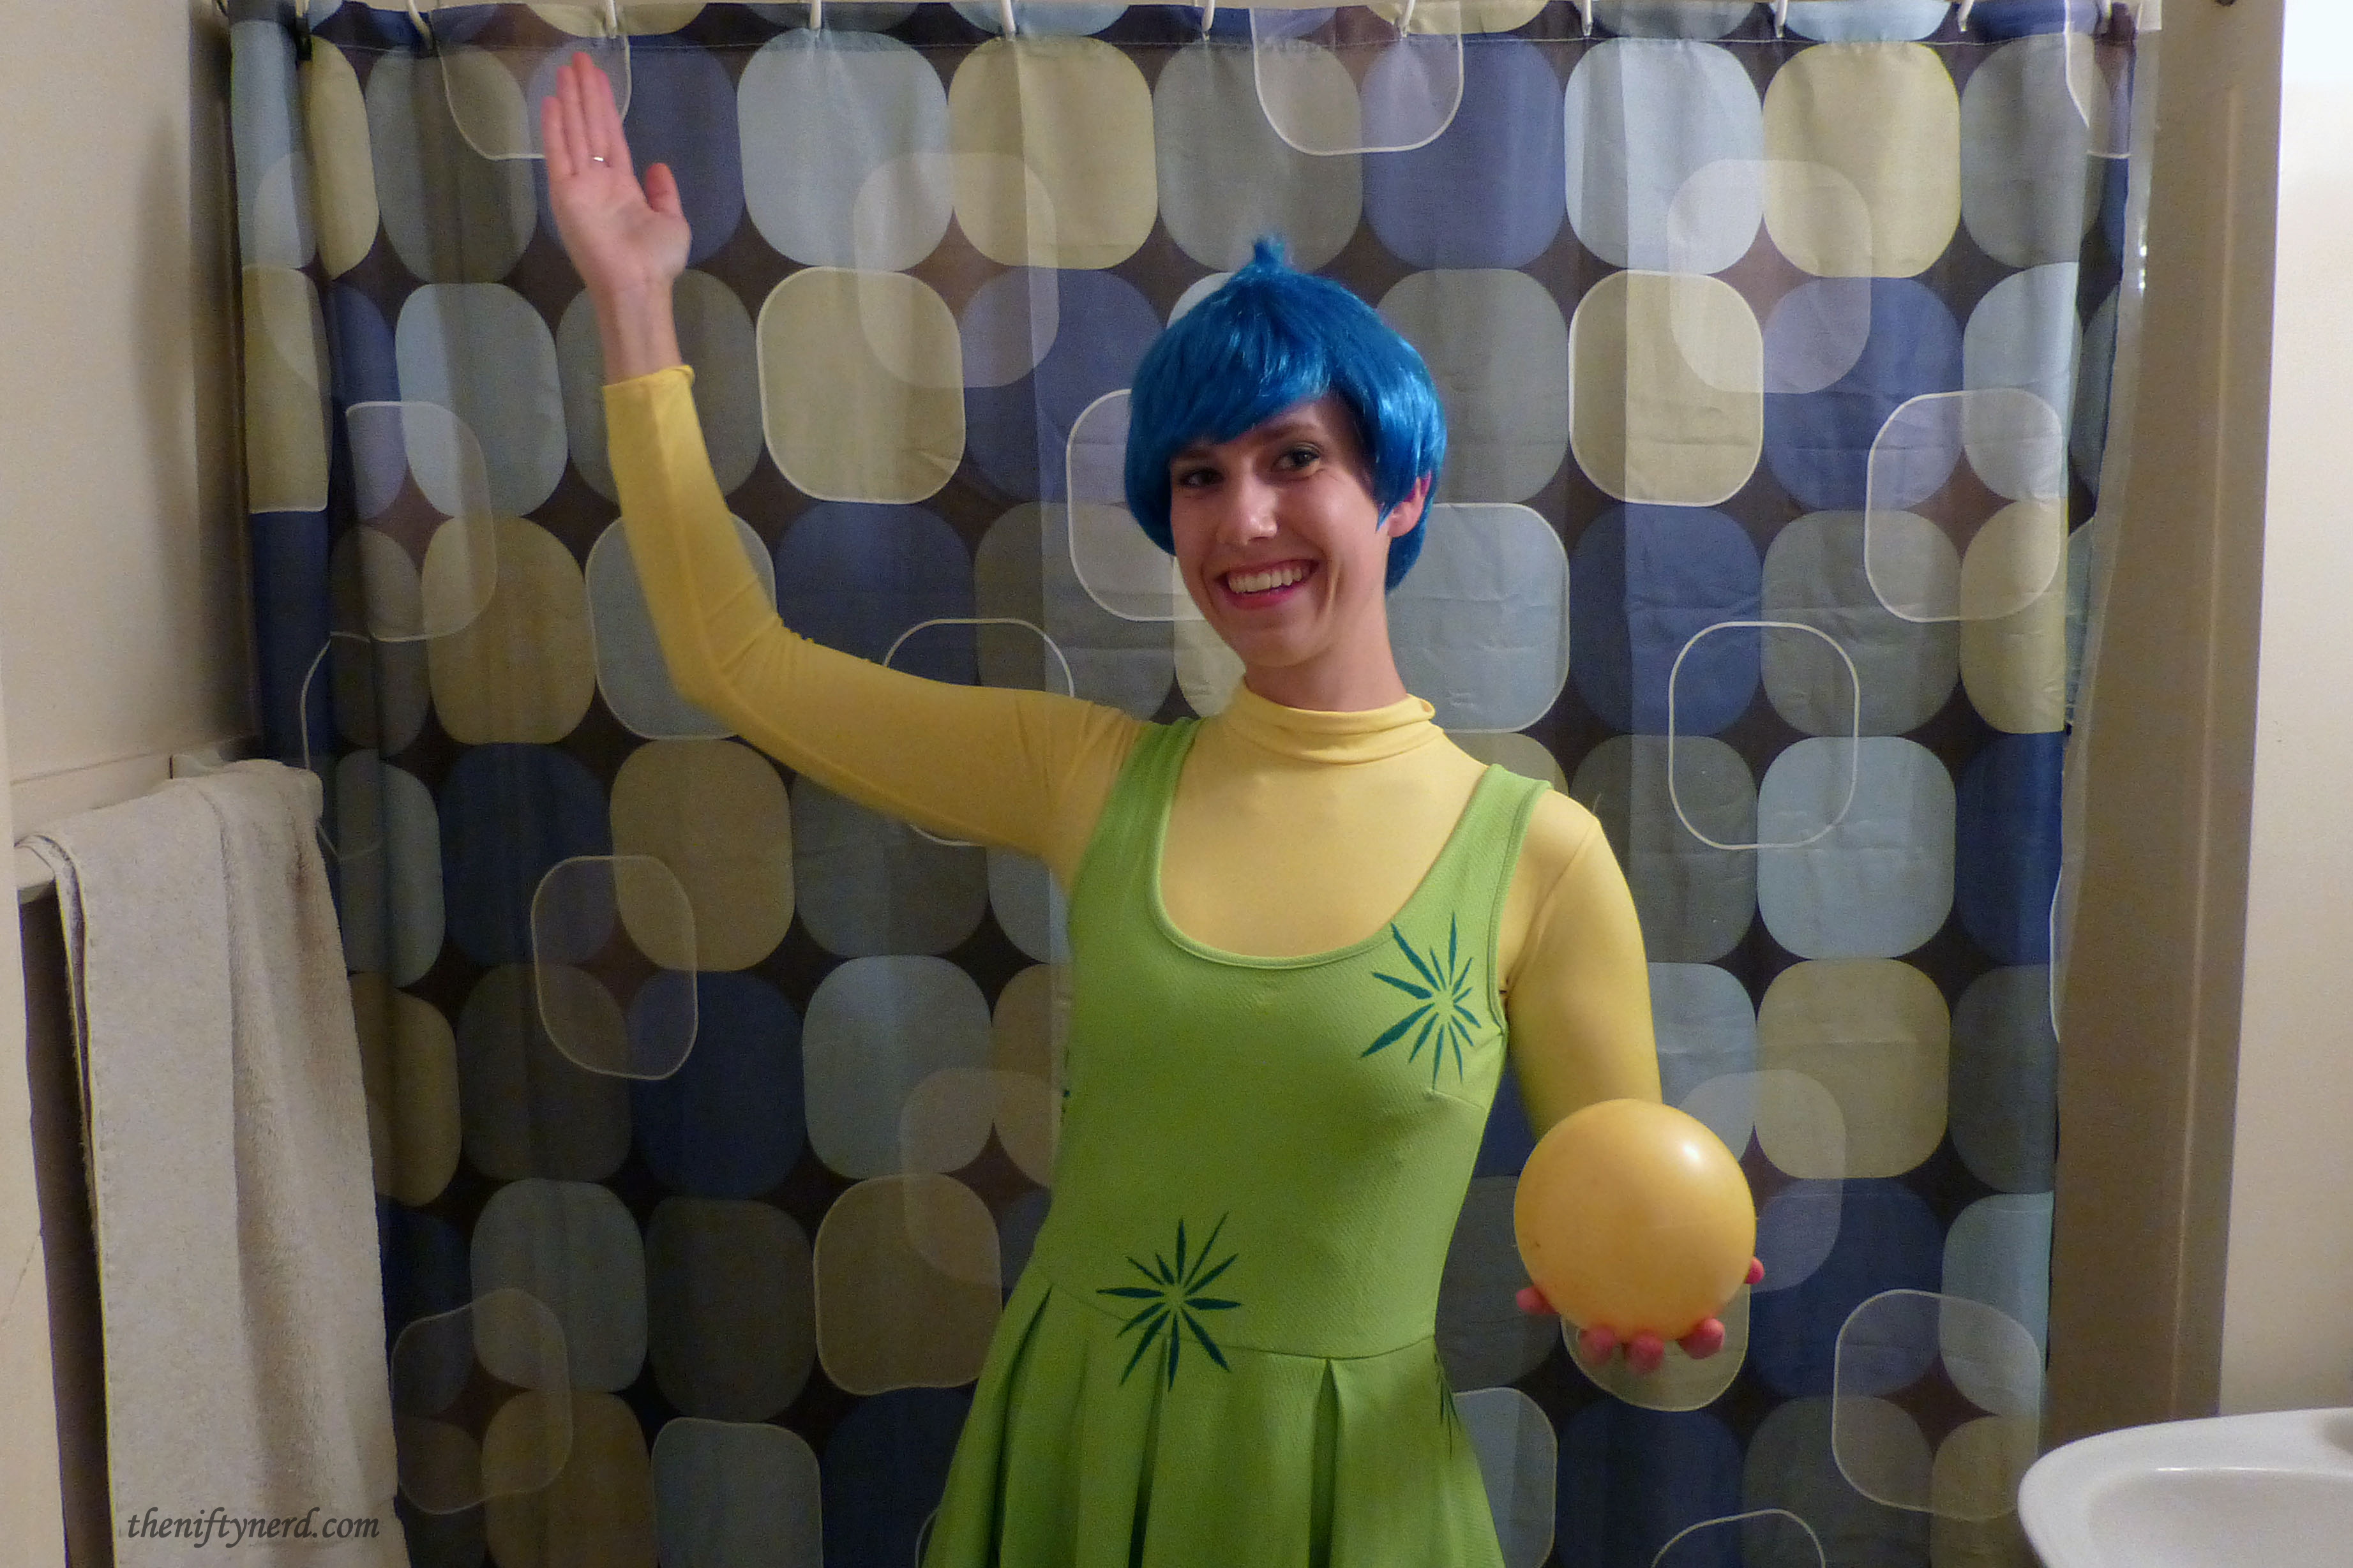 Joy Halloween costume from Inside Out